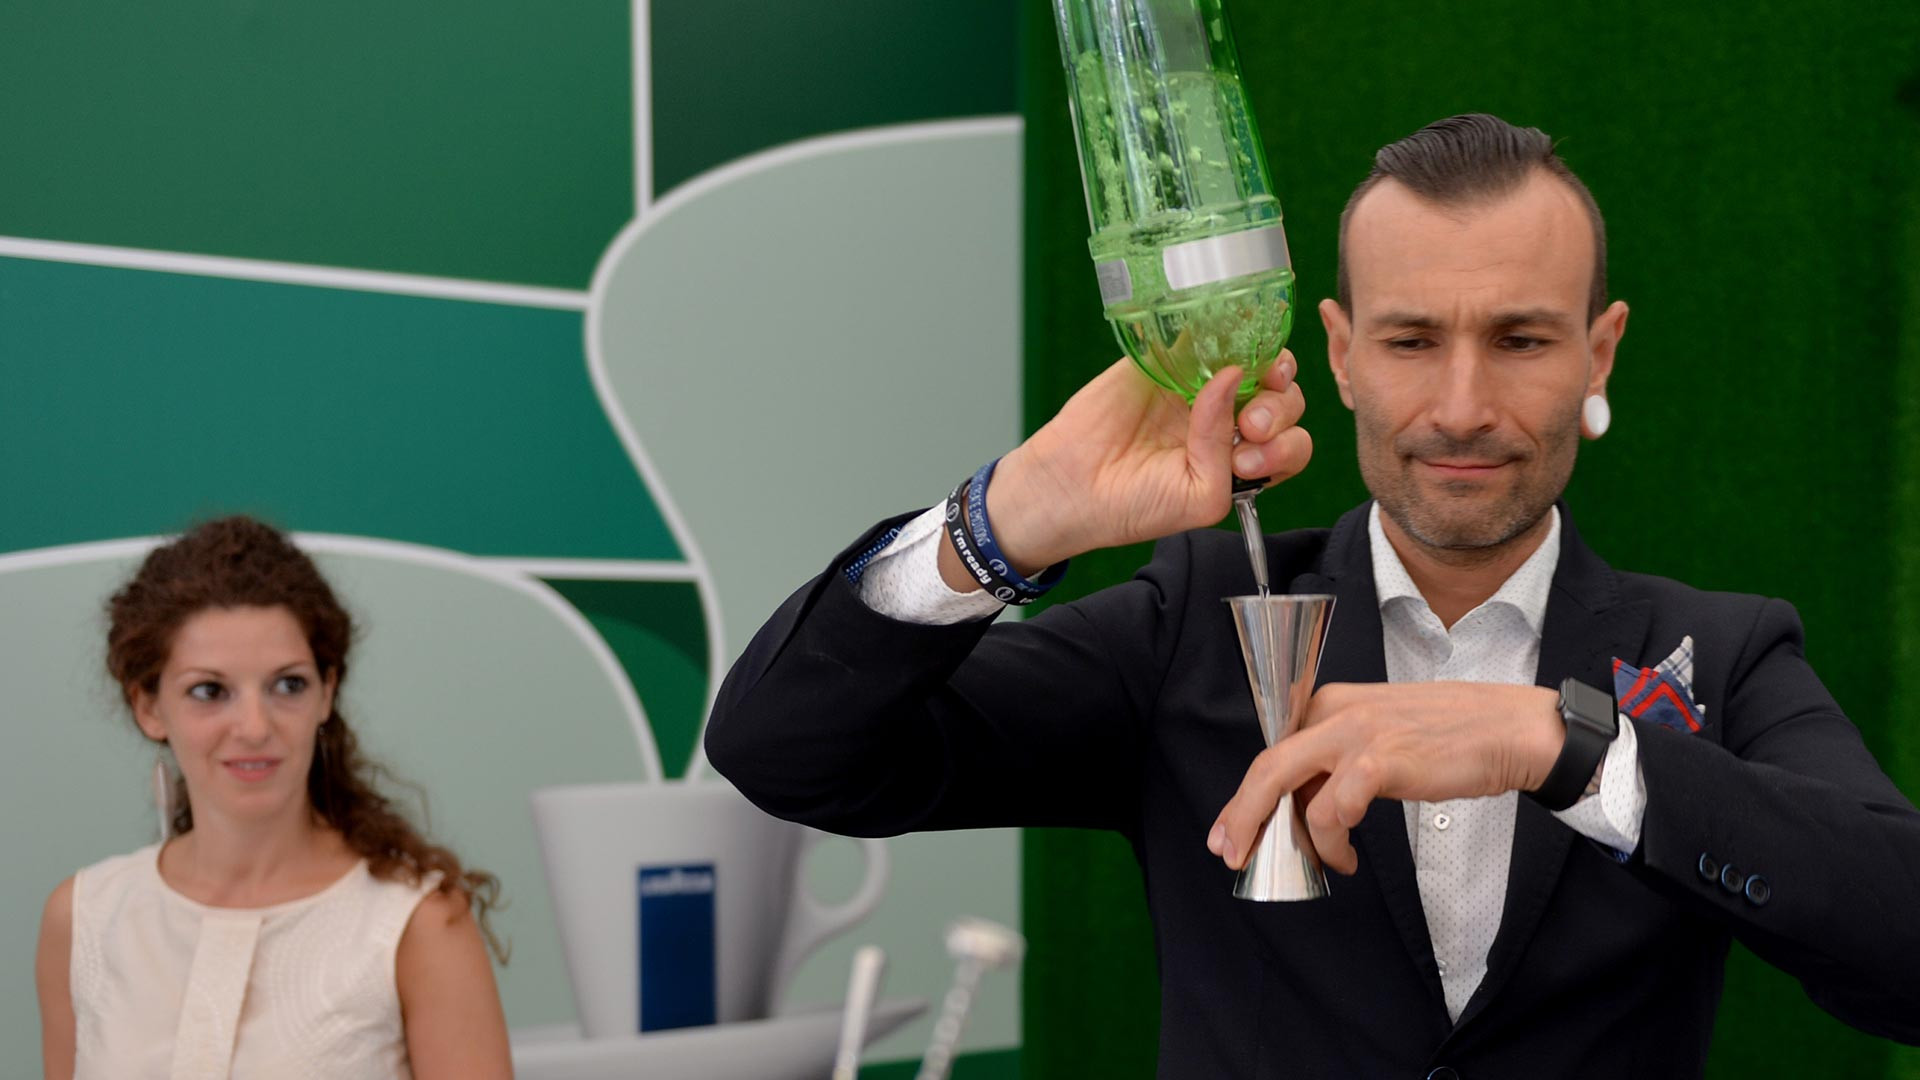 World-class Italian bartender Dennis Zoppi contructs Lavazza coffee-inspired cocktails at Wimbledon 2017